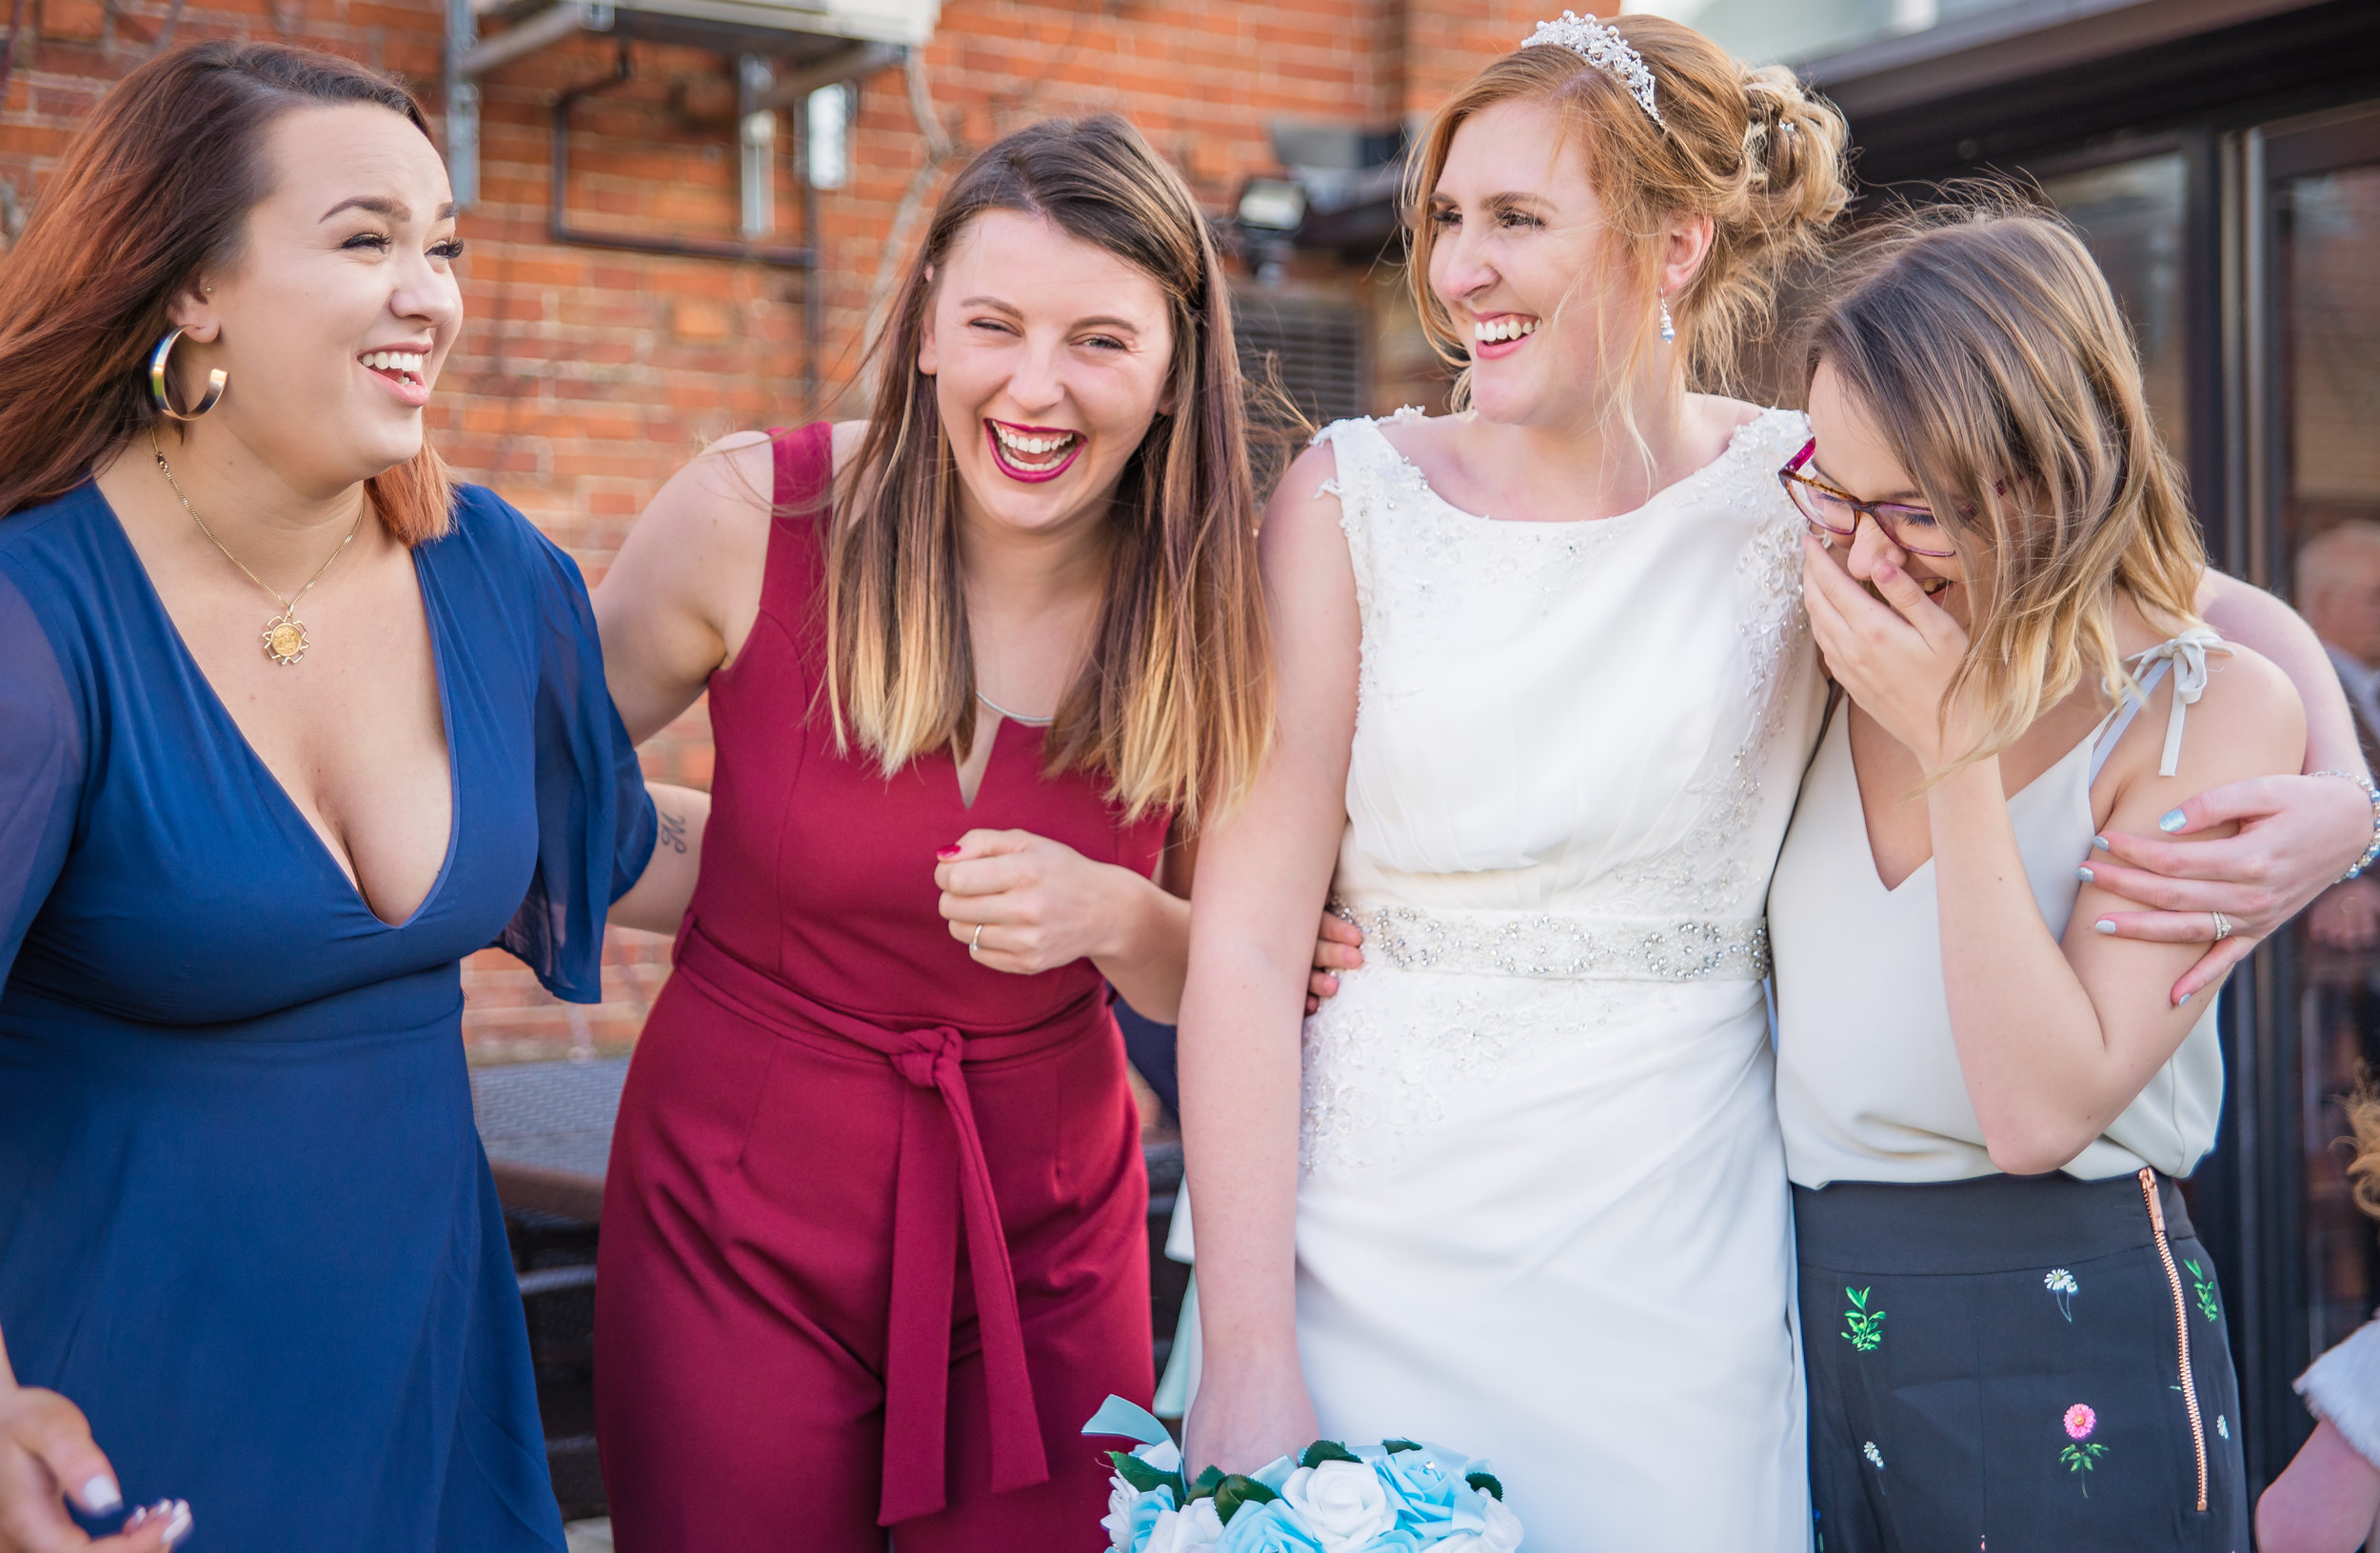 fun candid wedding photography